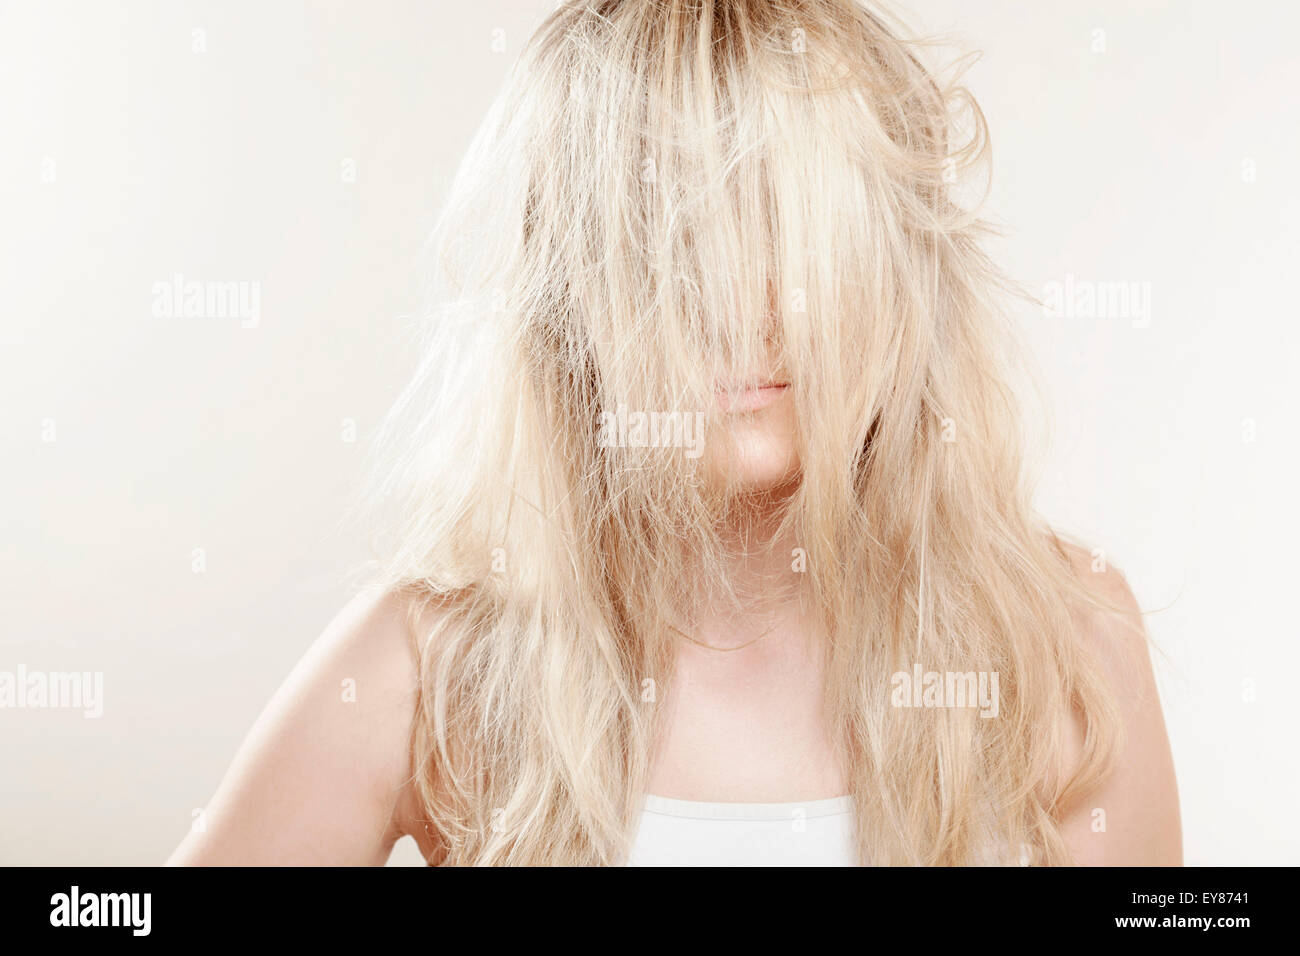 Young woman, blond hair covering face - Stock Image